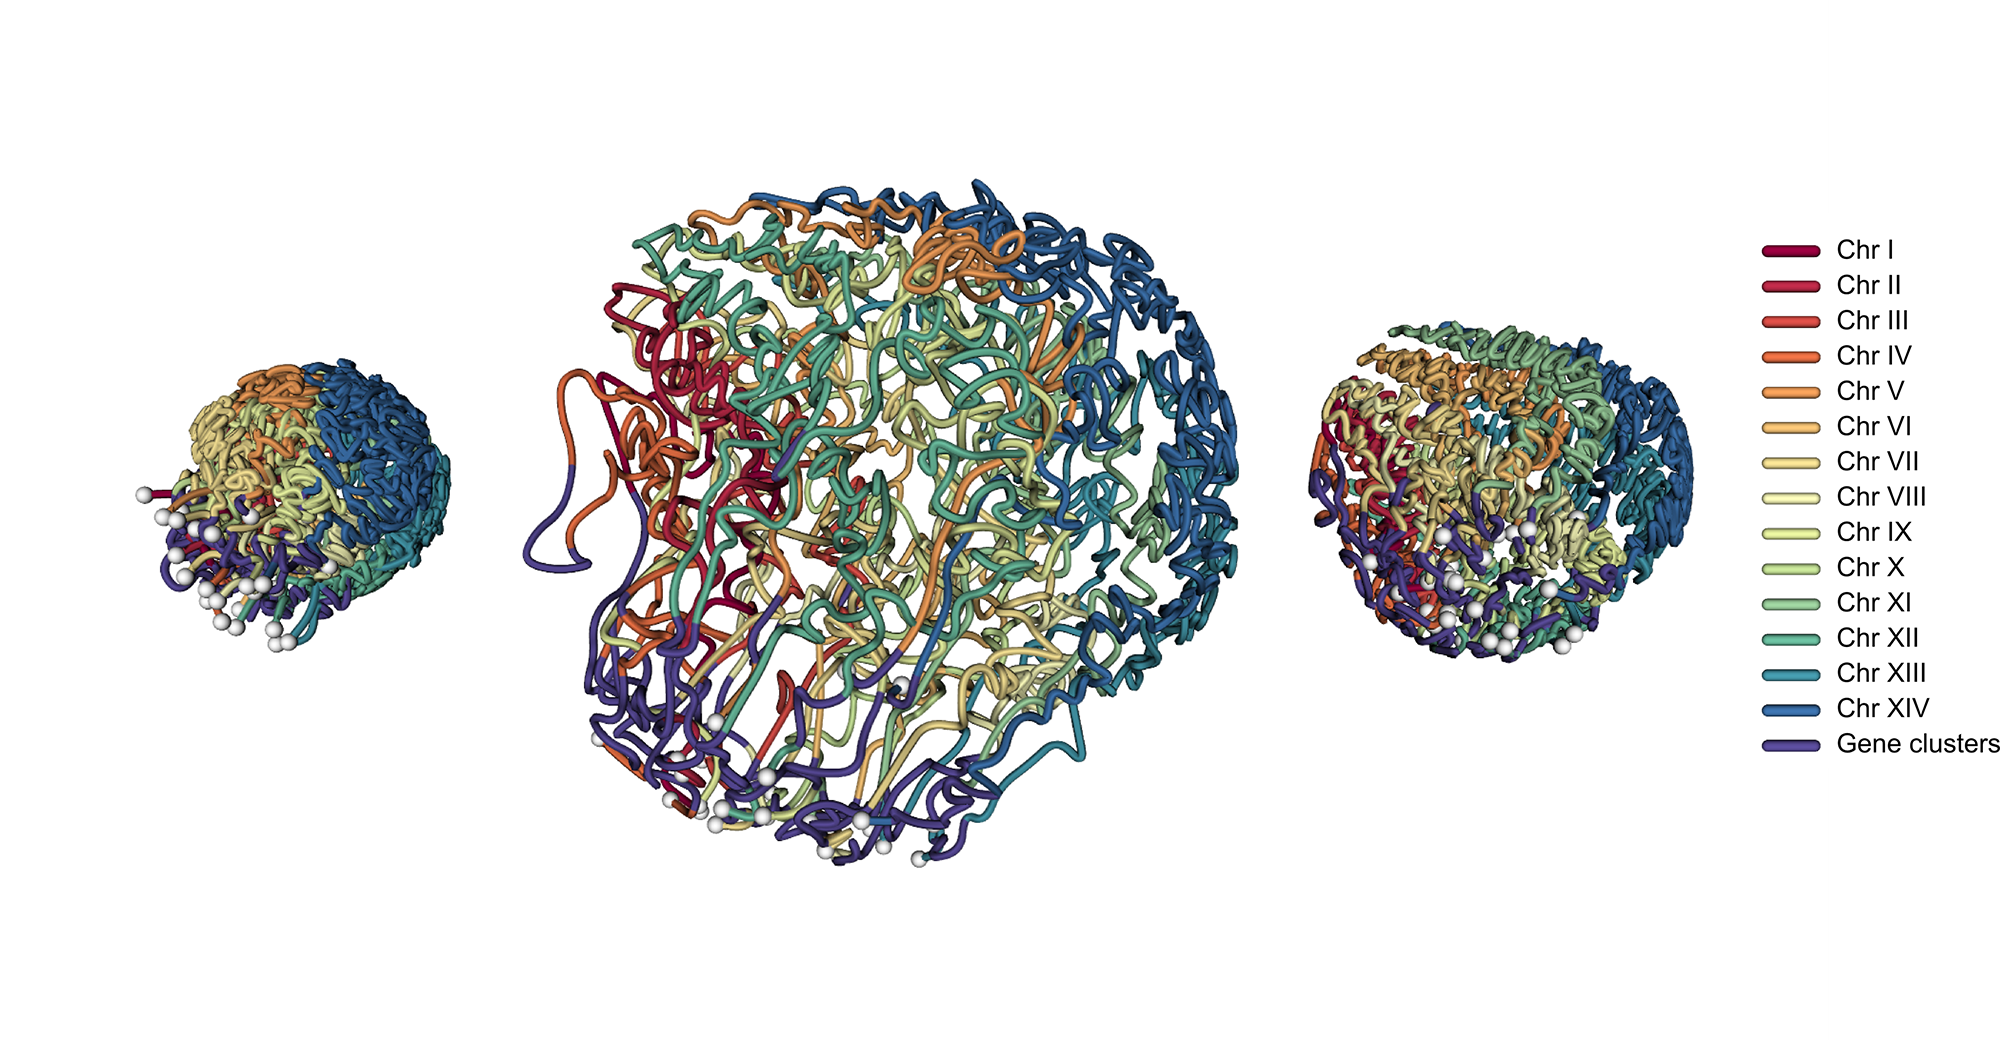 P. falciparum 3D genome organization